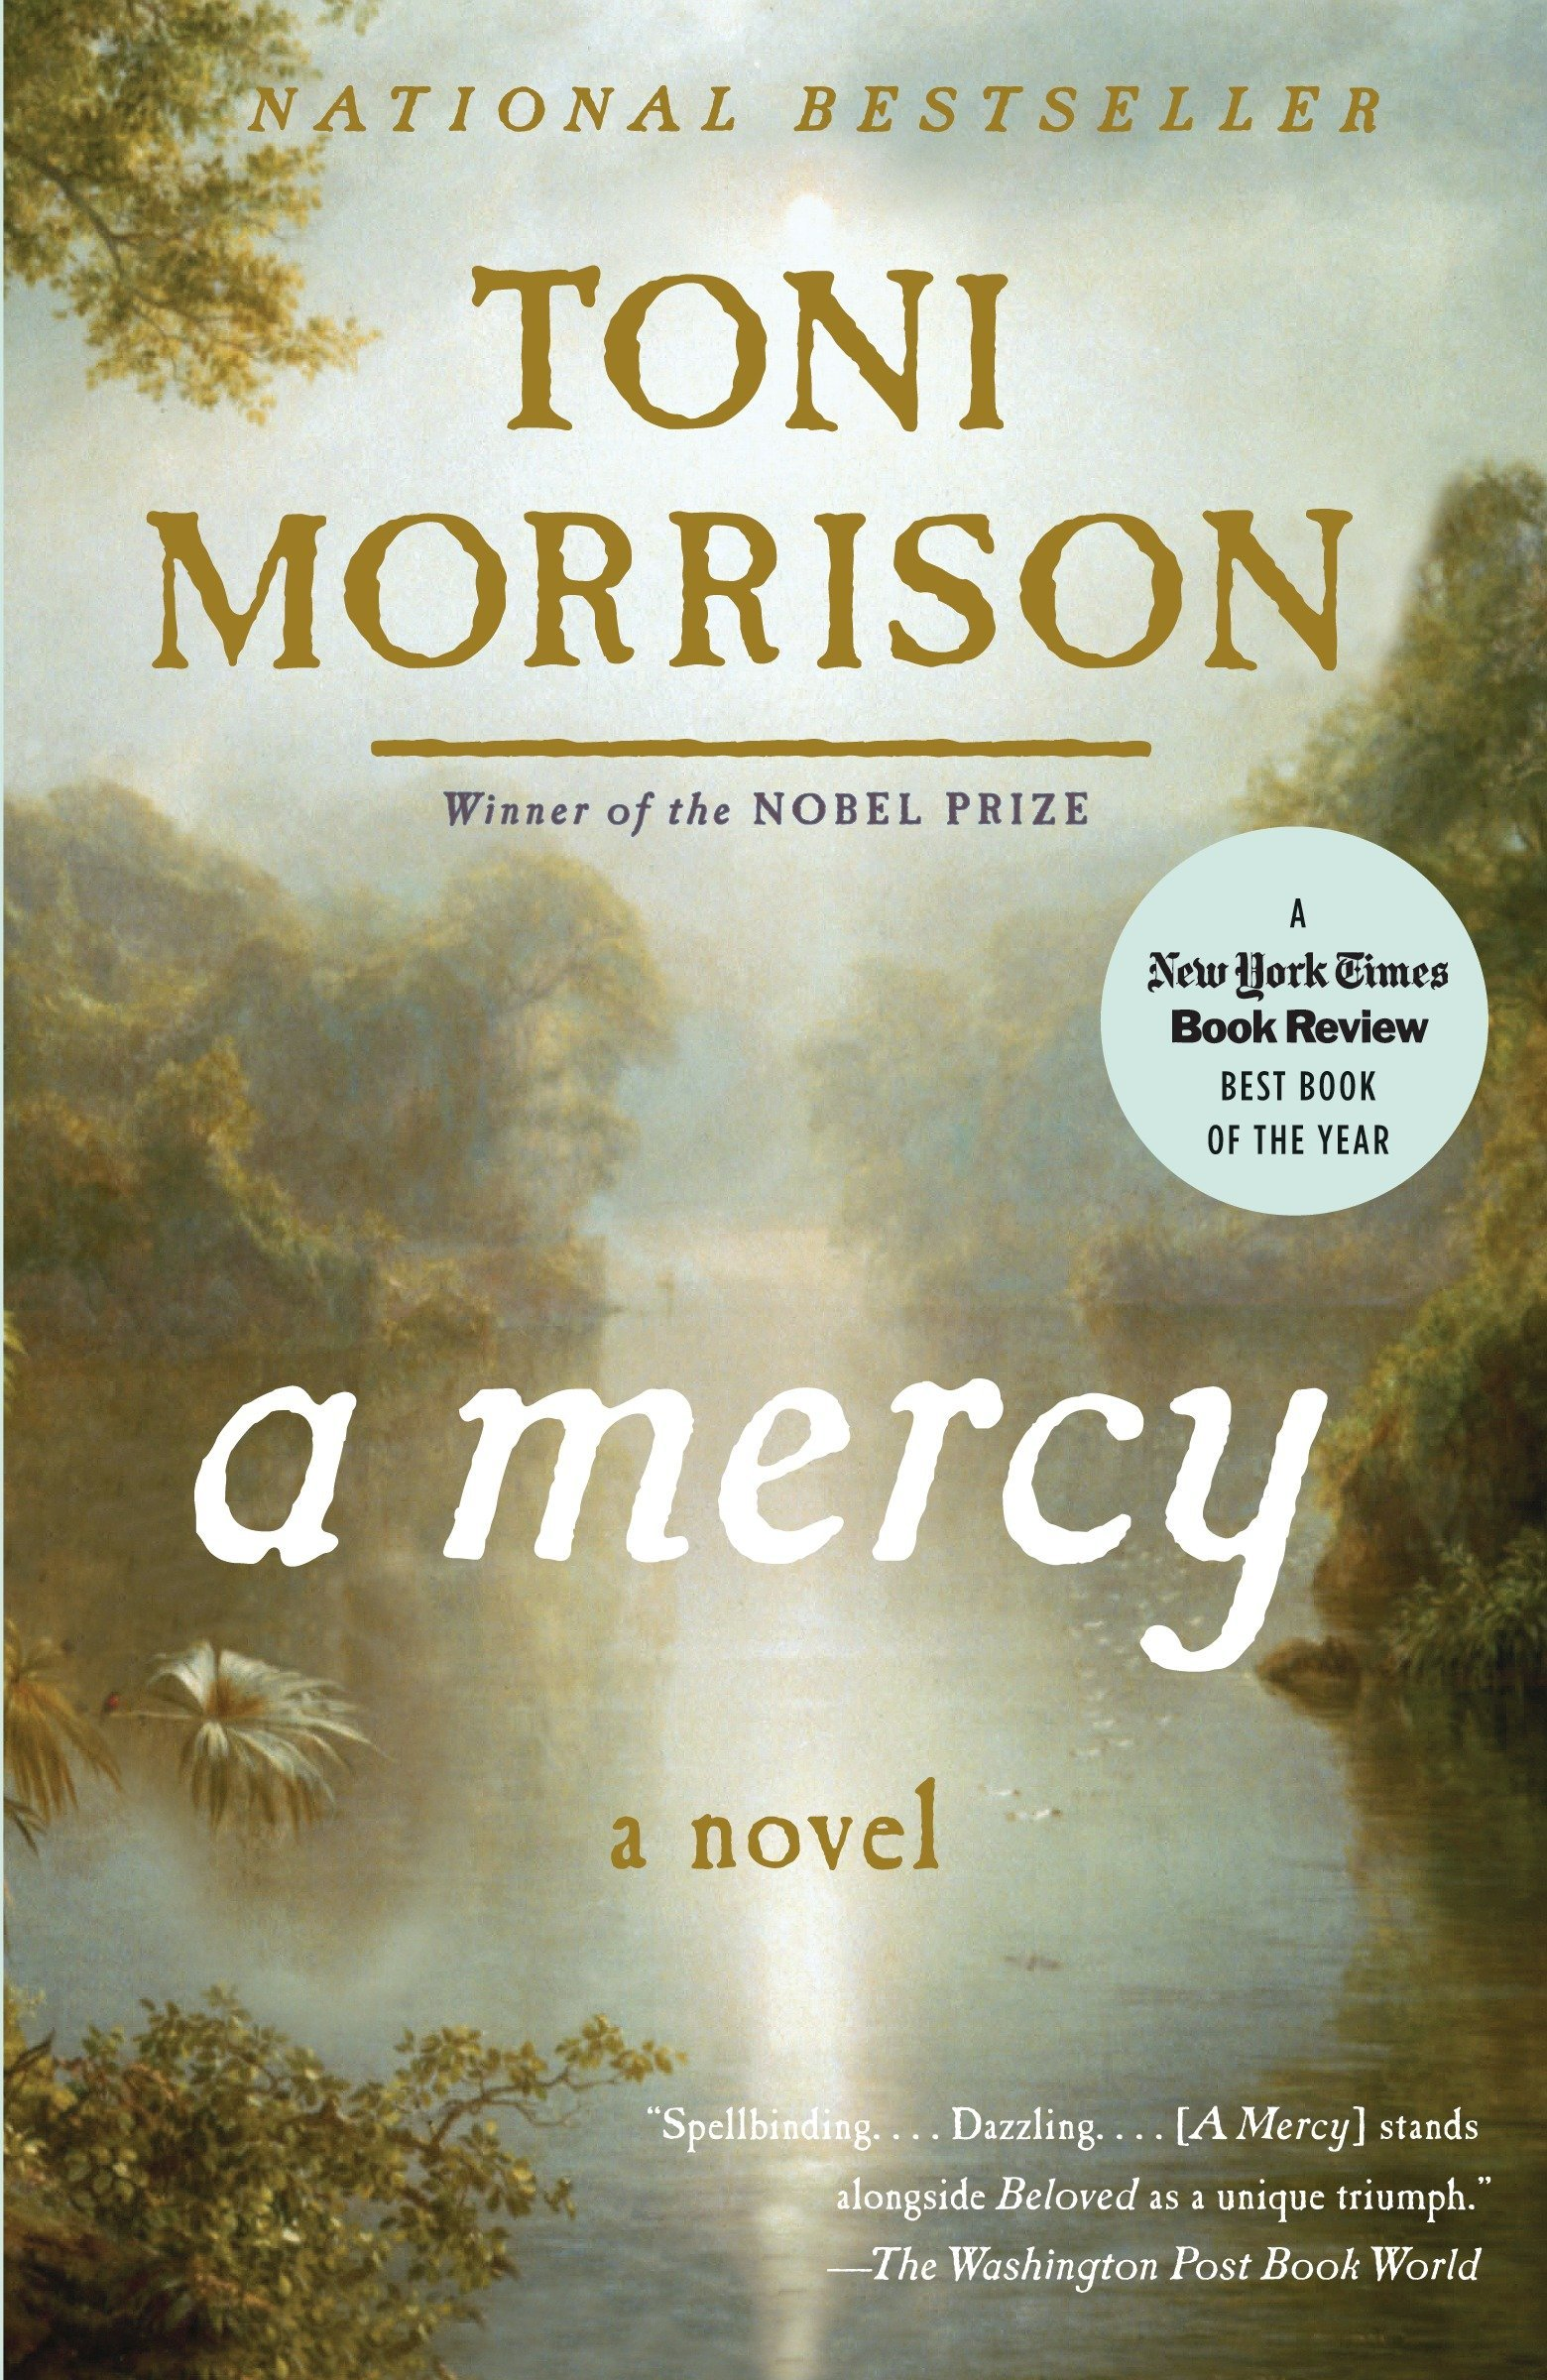 A Mercy (Vintage International): Amazon.es: Toni Morrison: Libros en idiomas extranjeros